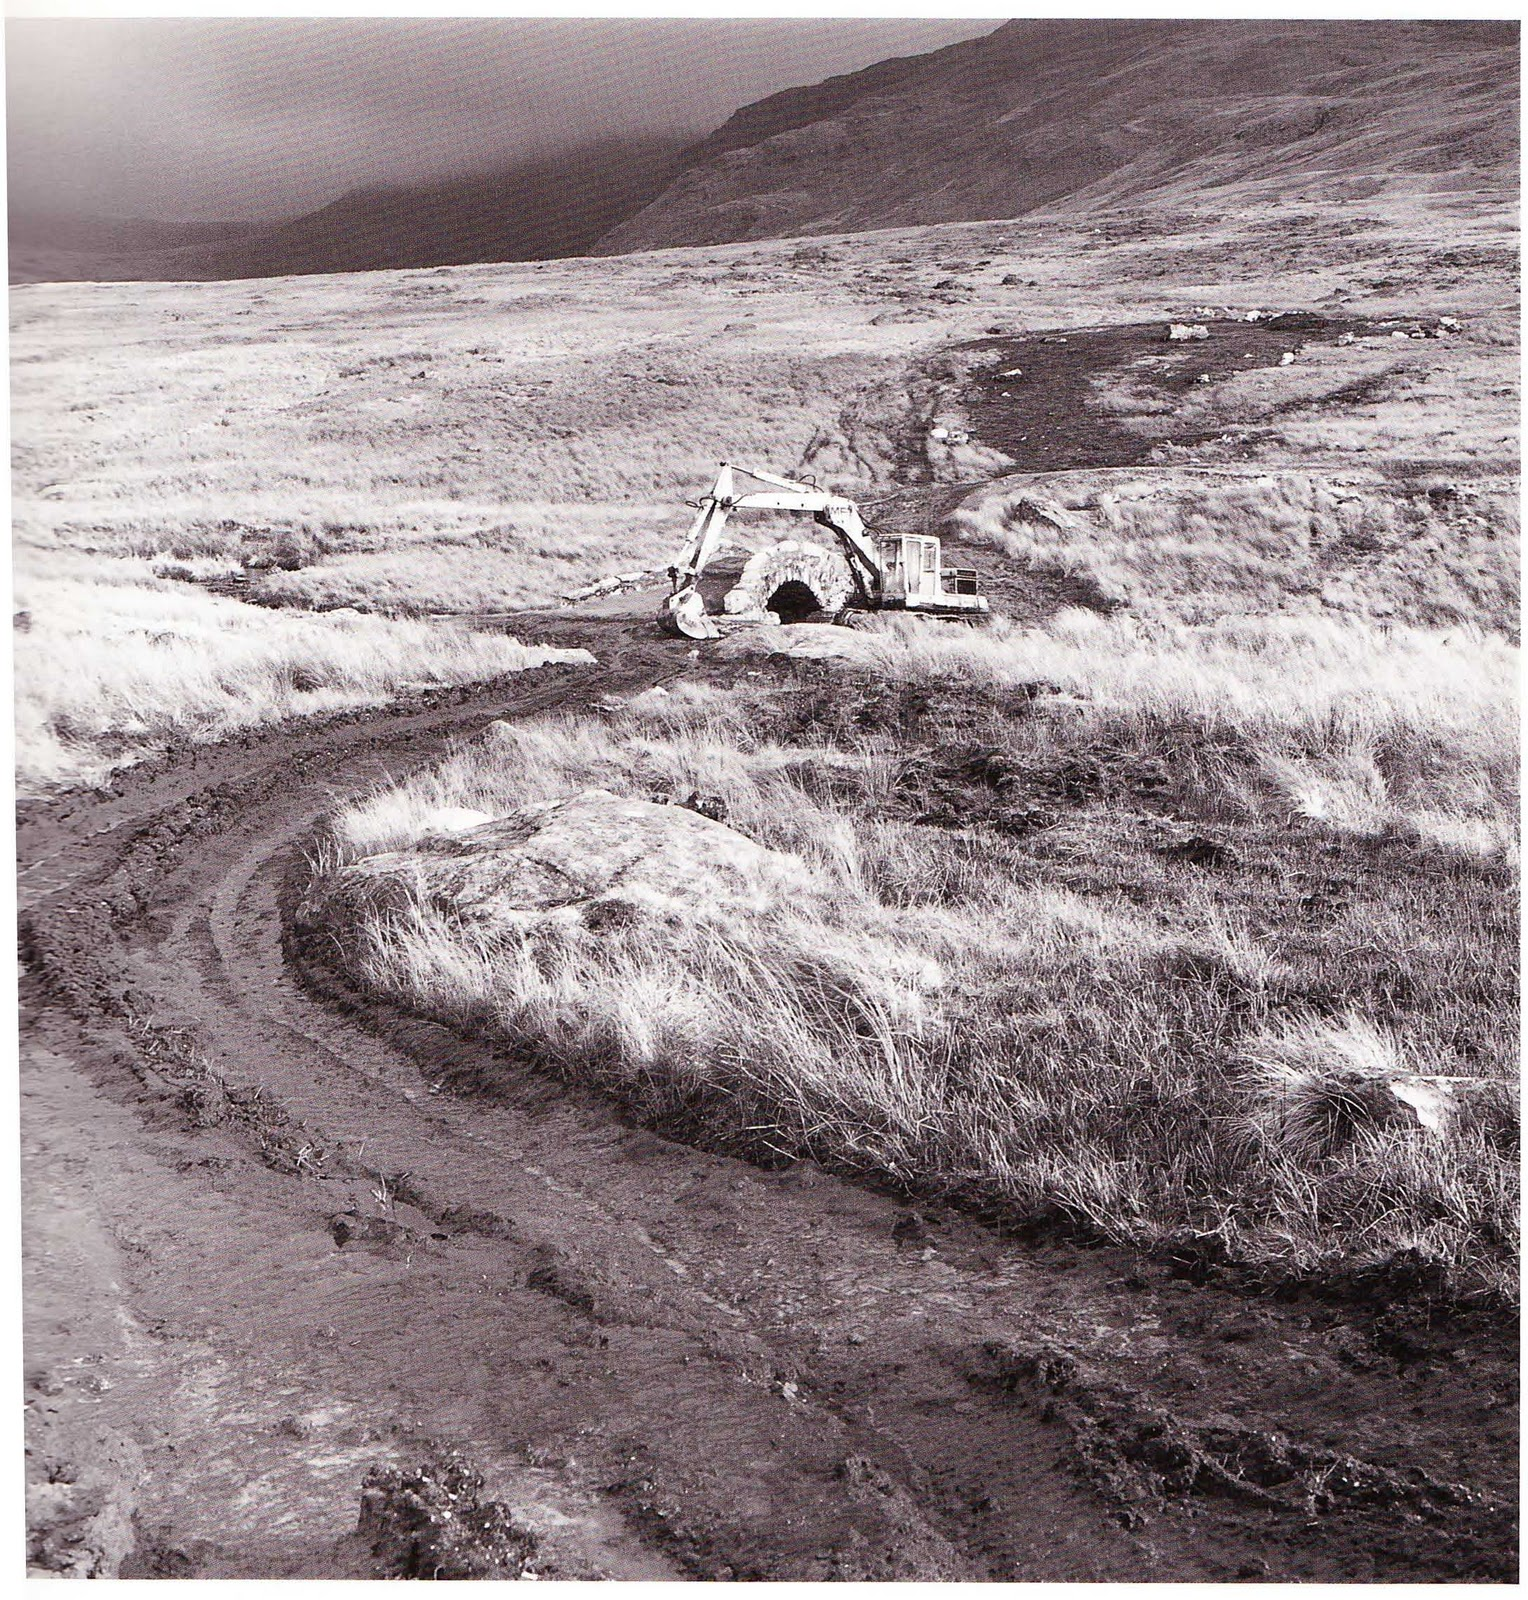 8a0c65ca49b as well as wonderful natural landscape photographs like 'Choinnich,  Cuillin Hills, Skye' (P149). For those who had labelled Fay Godwin ...